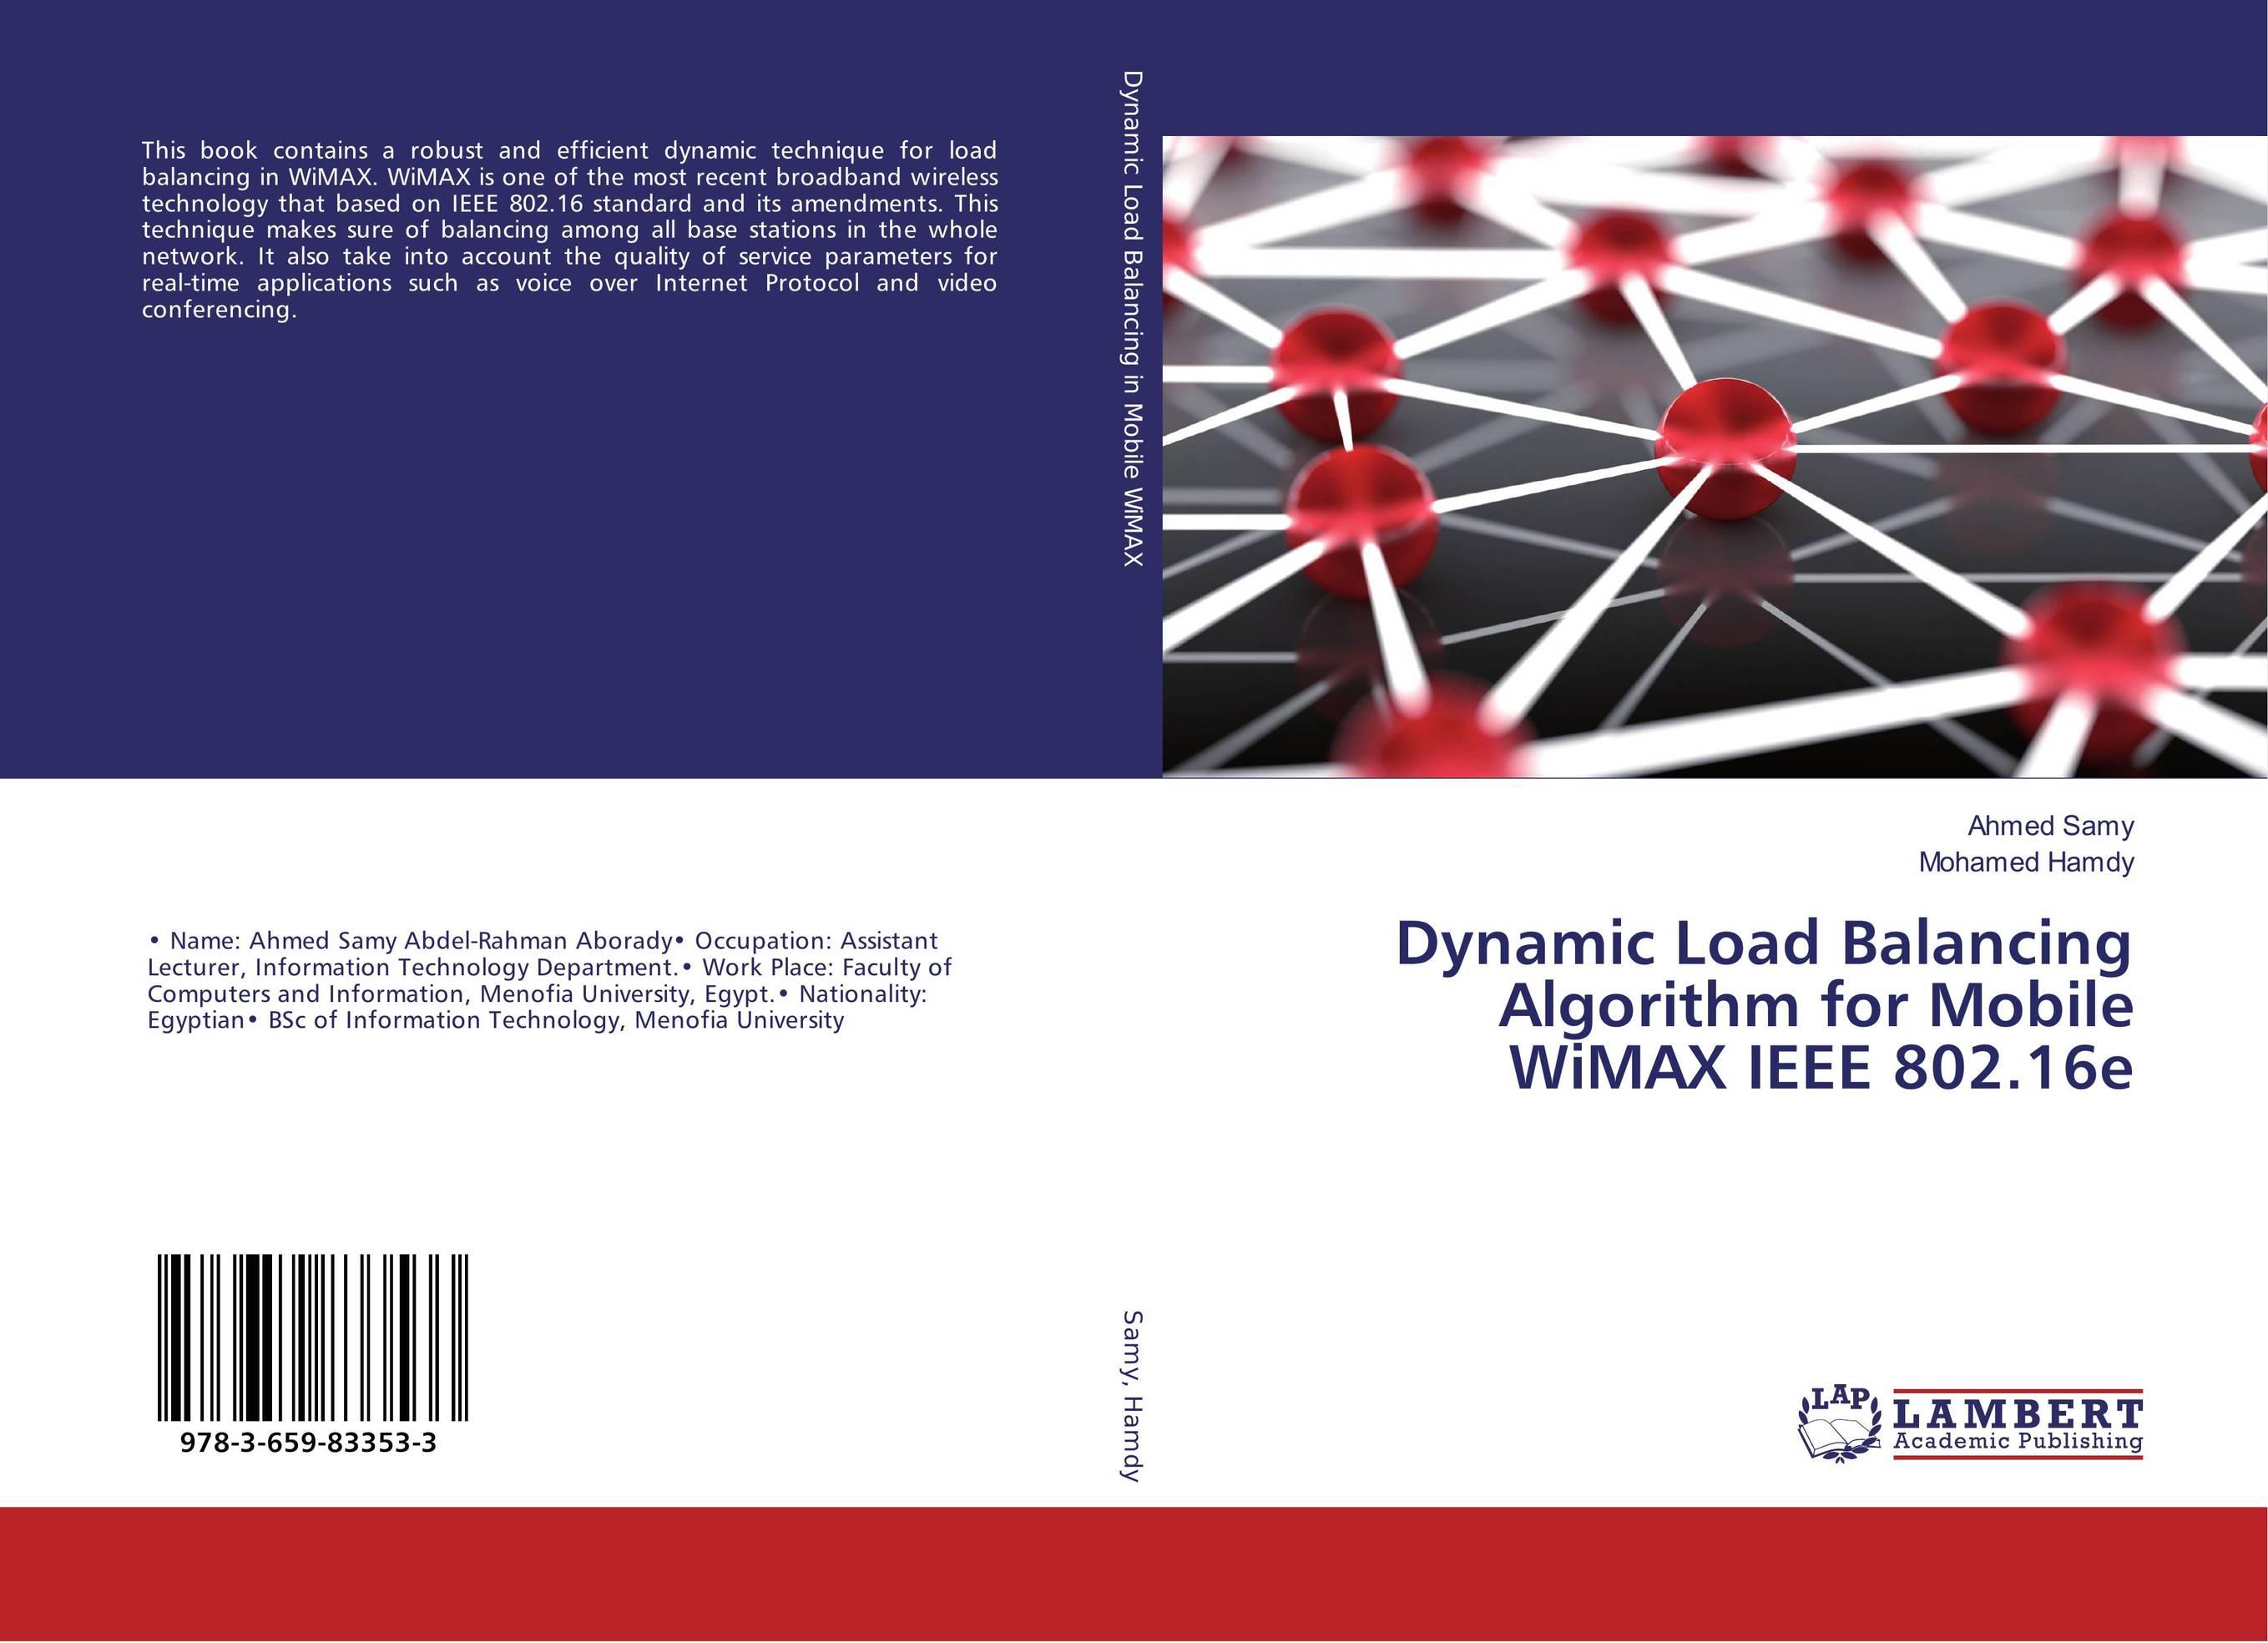 Dynamic Load Balancing Algorithm for Mobile WiMAX IEEE 802.16e optimal pll loop filter design for mobile wimax via lmi